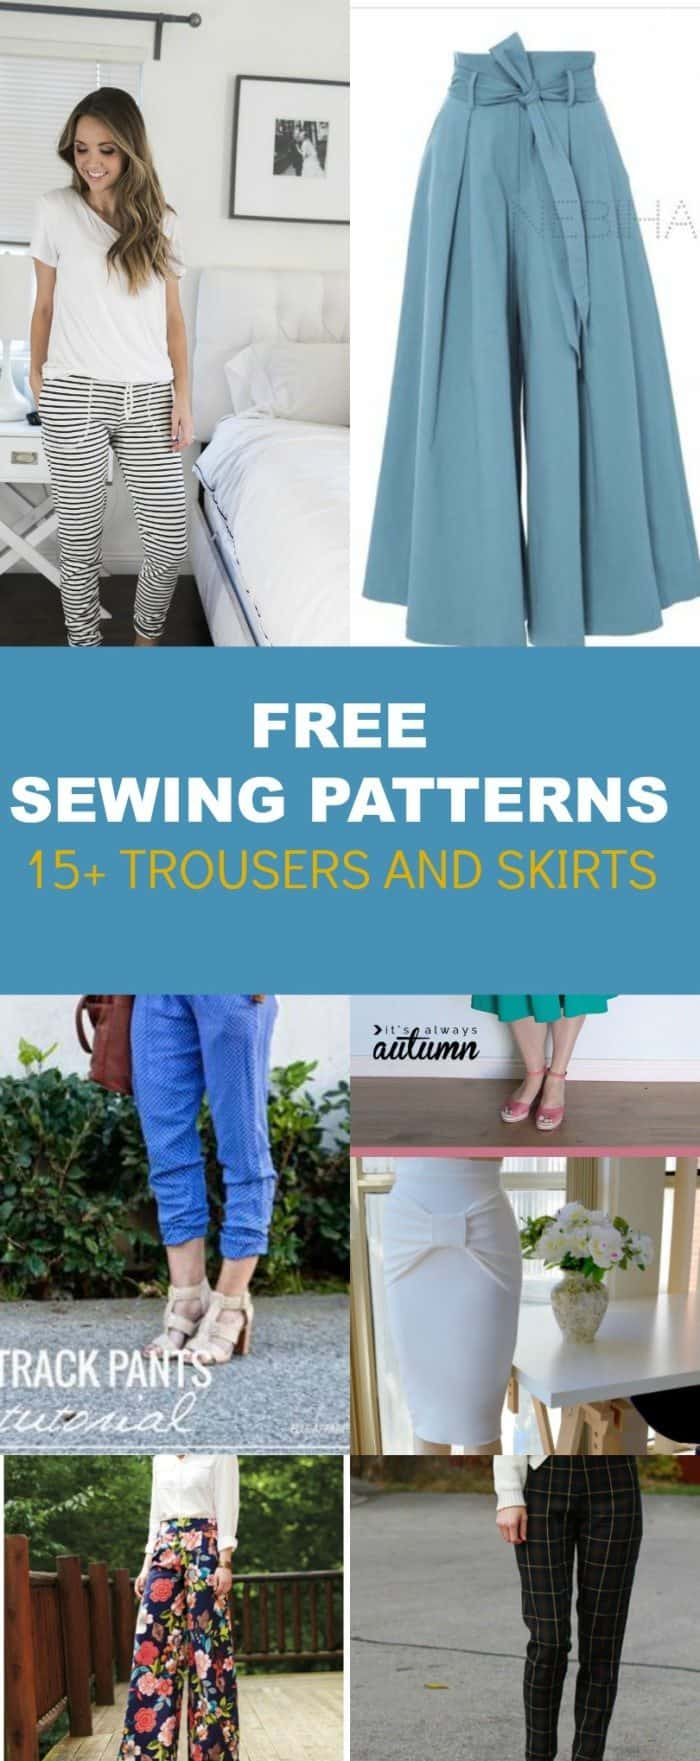 FREE-SEWING-PATTERS